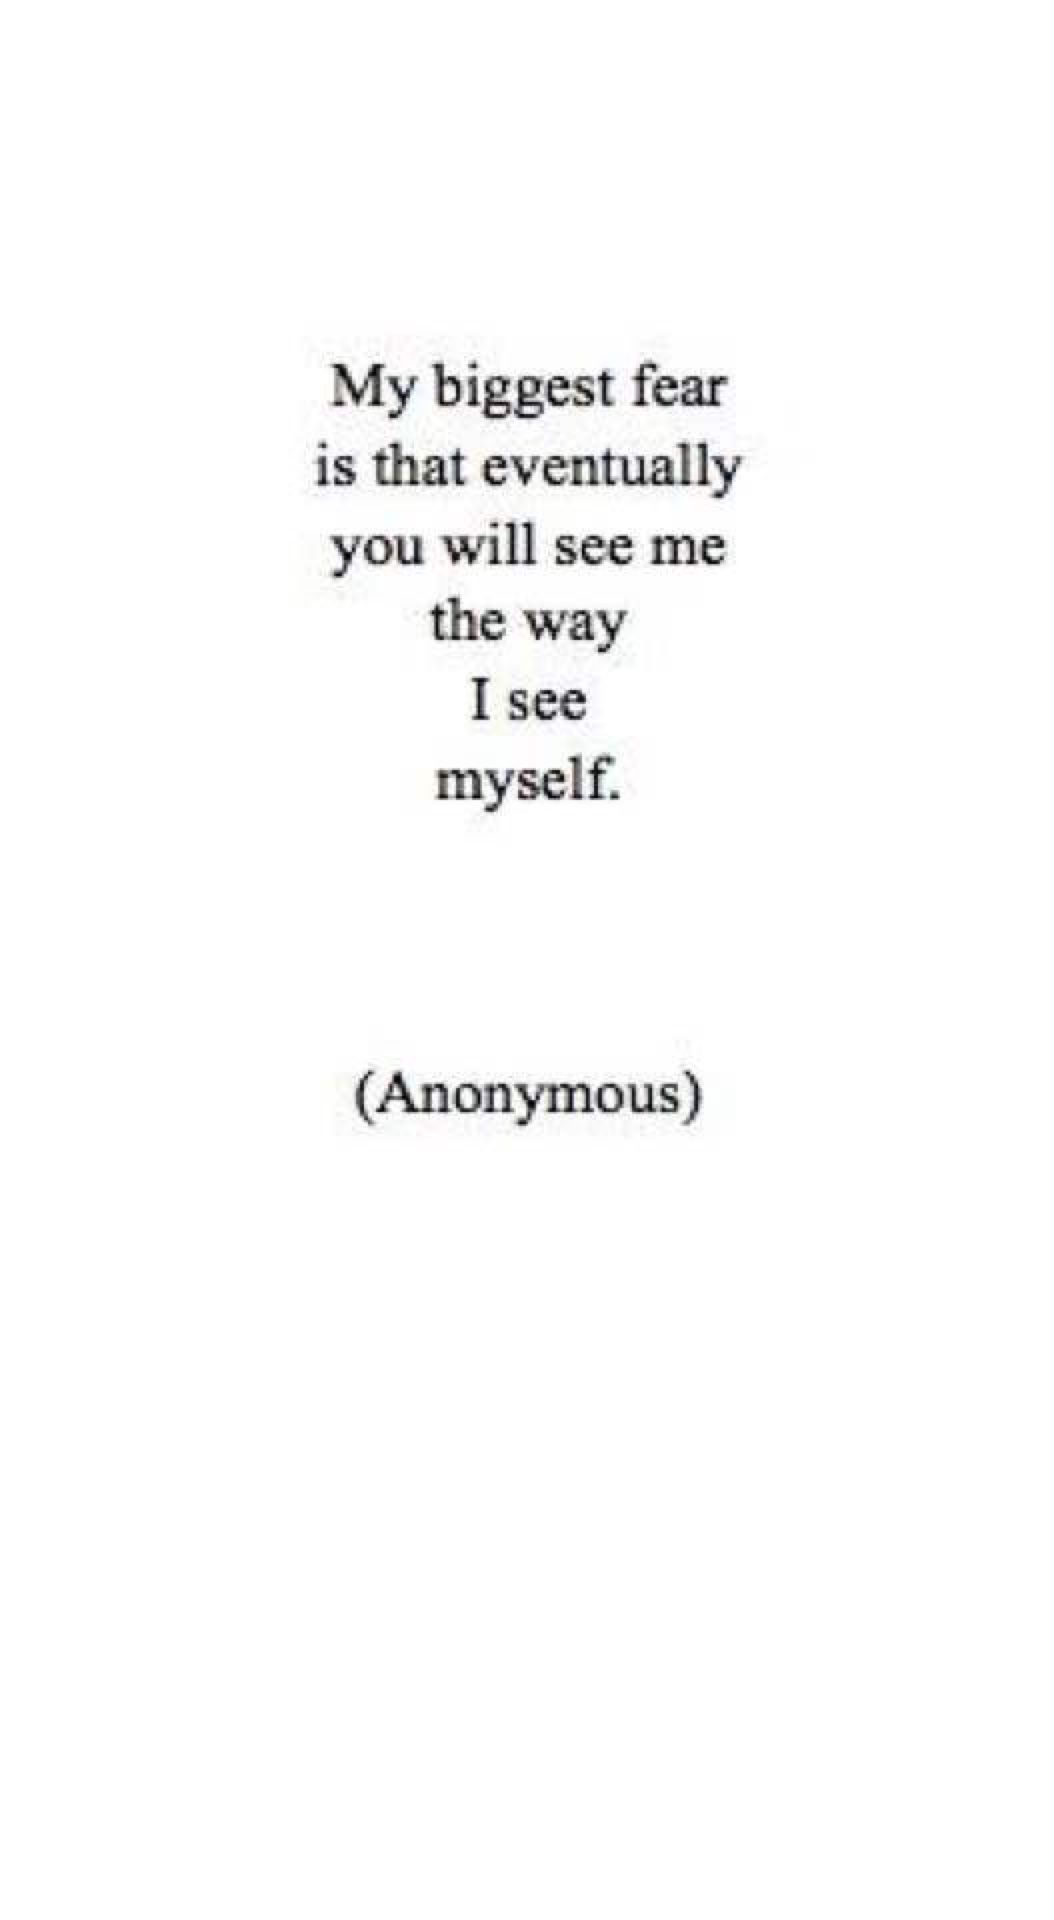 Black and white tumblr depressed depression quotes self harm cutting depressive